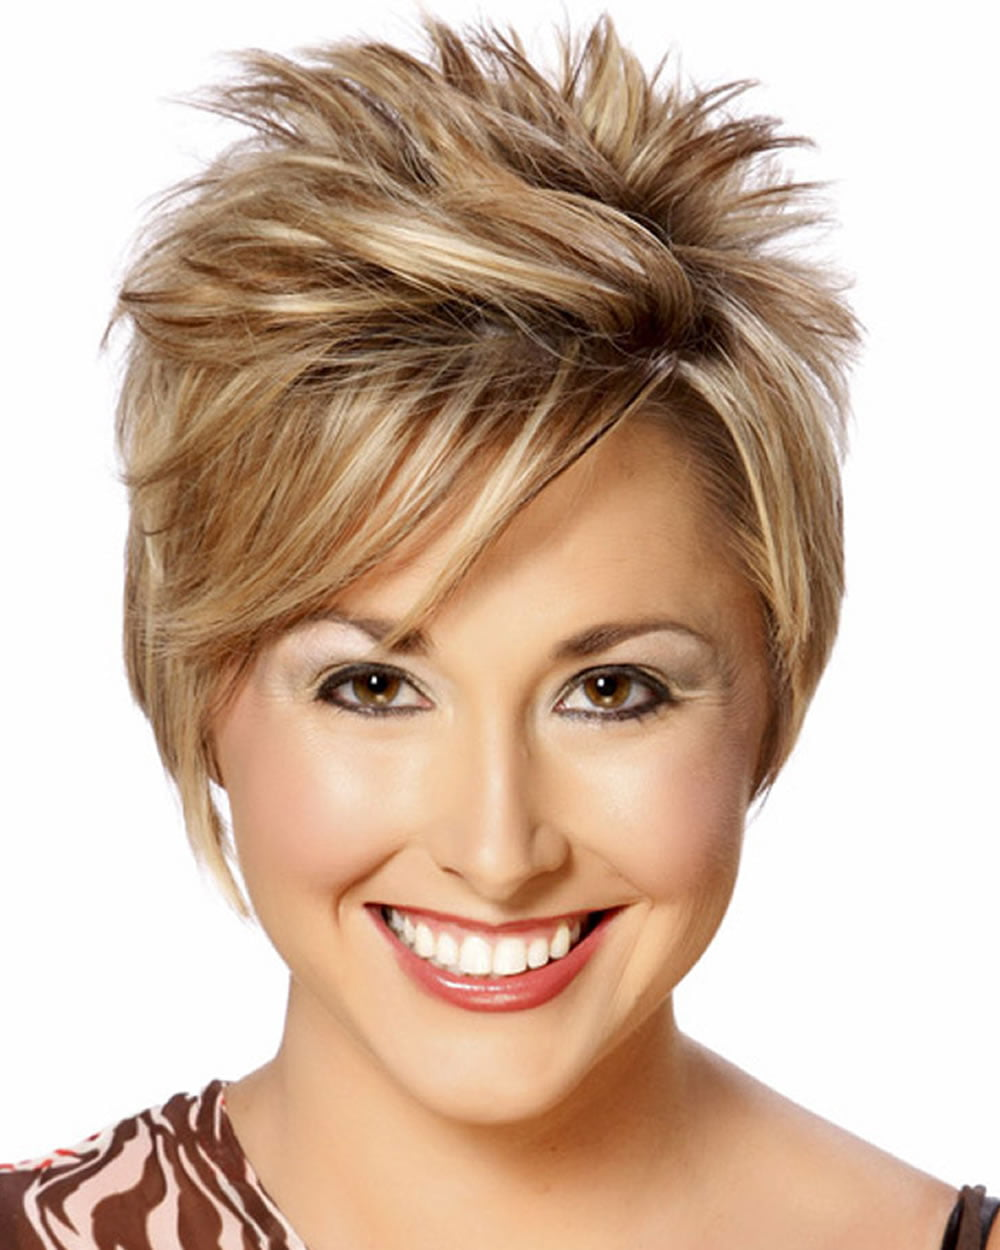 Short Spiky Haircuts  Hairstyles for Women 2018  HAIRSTYLES